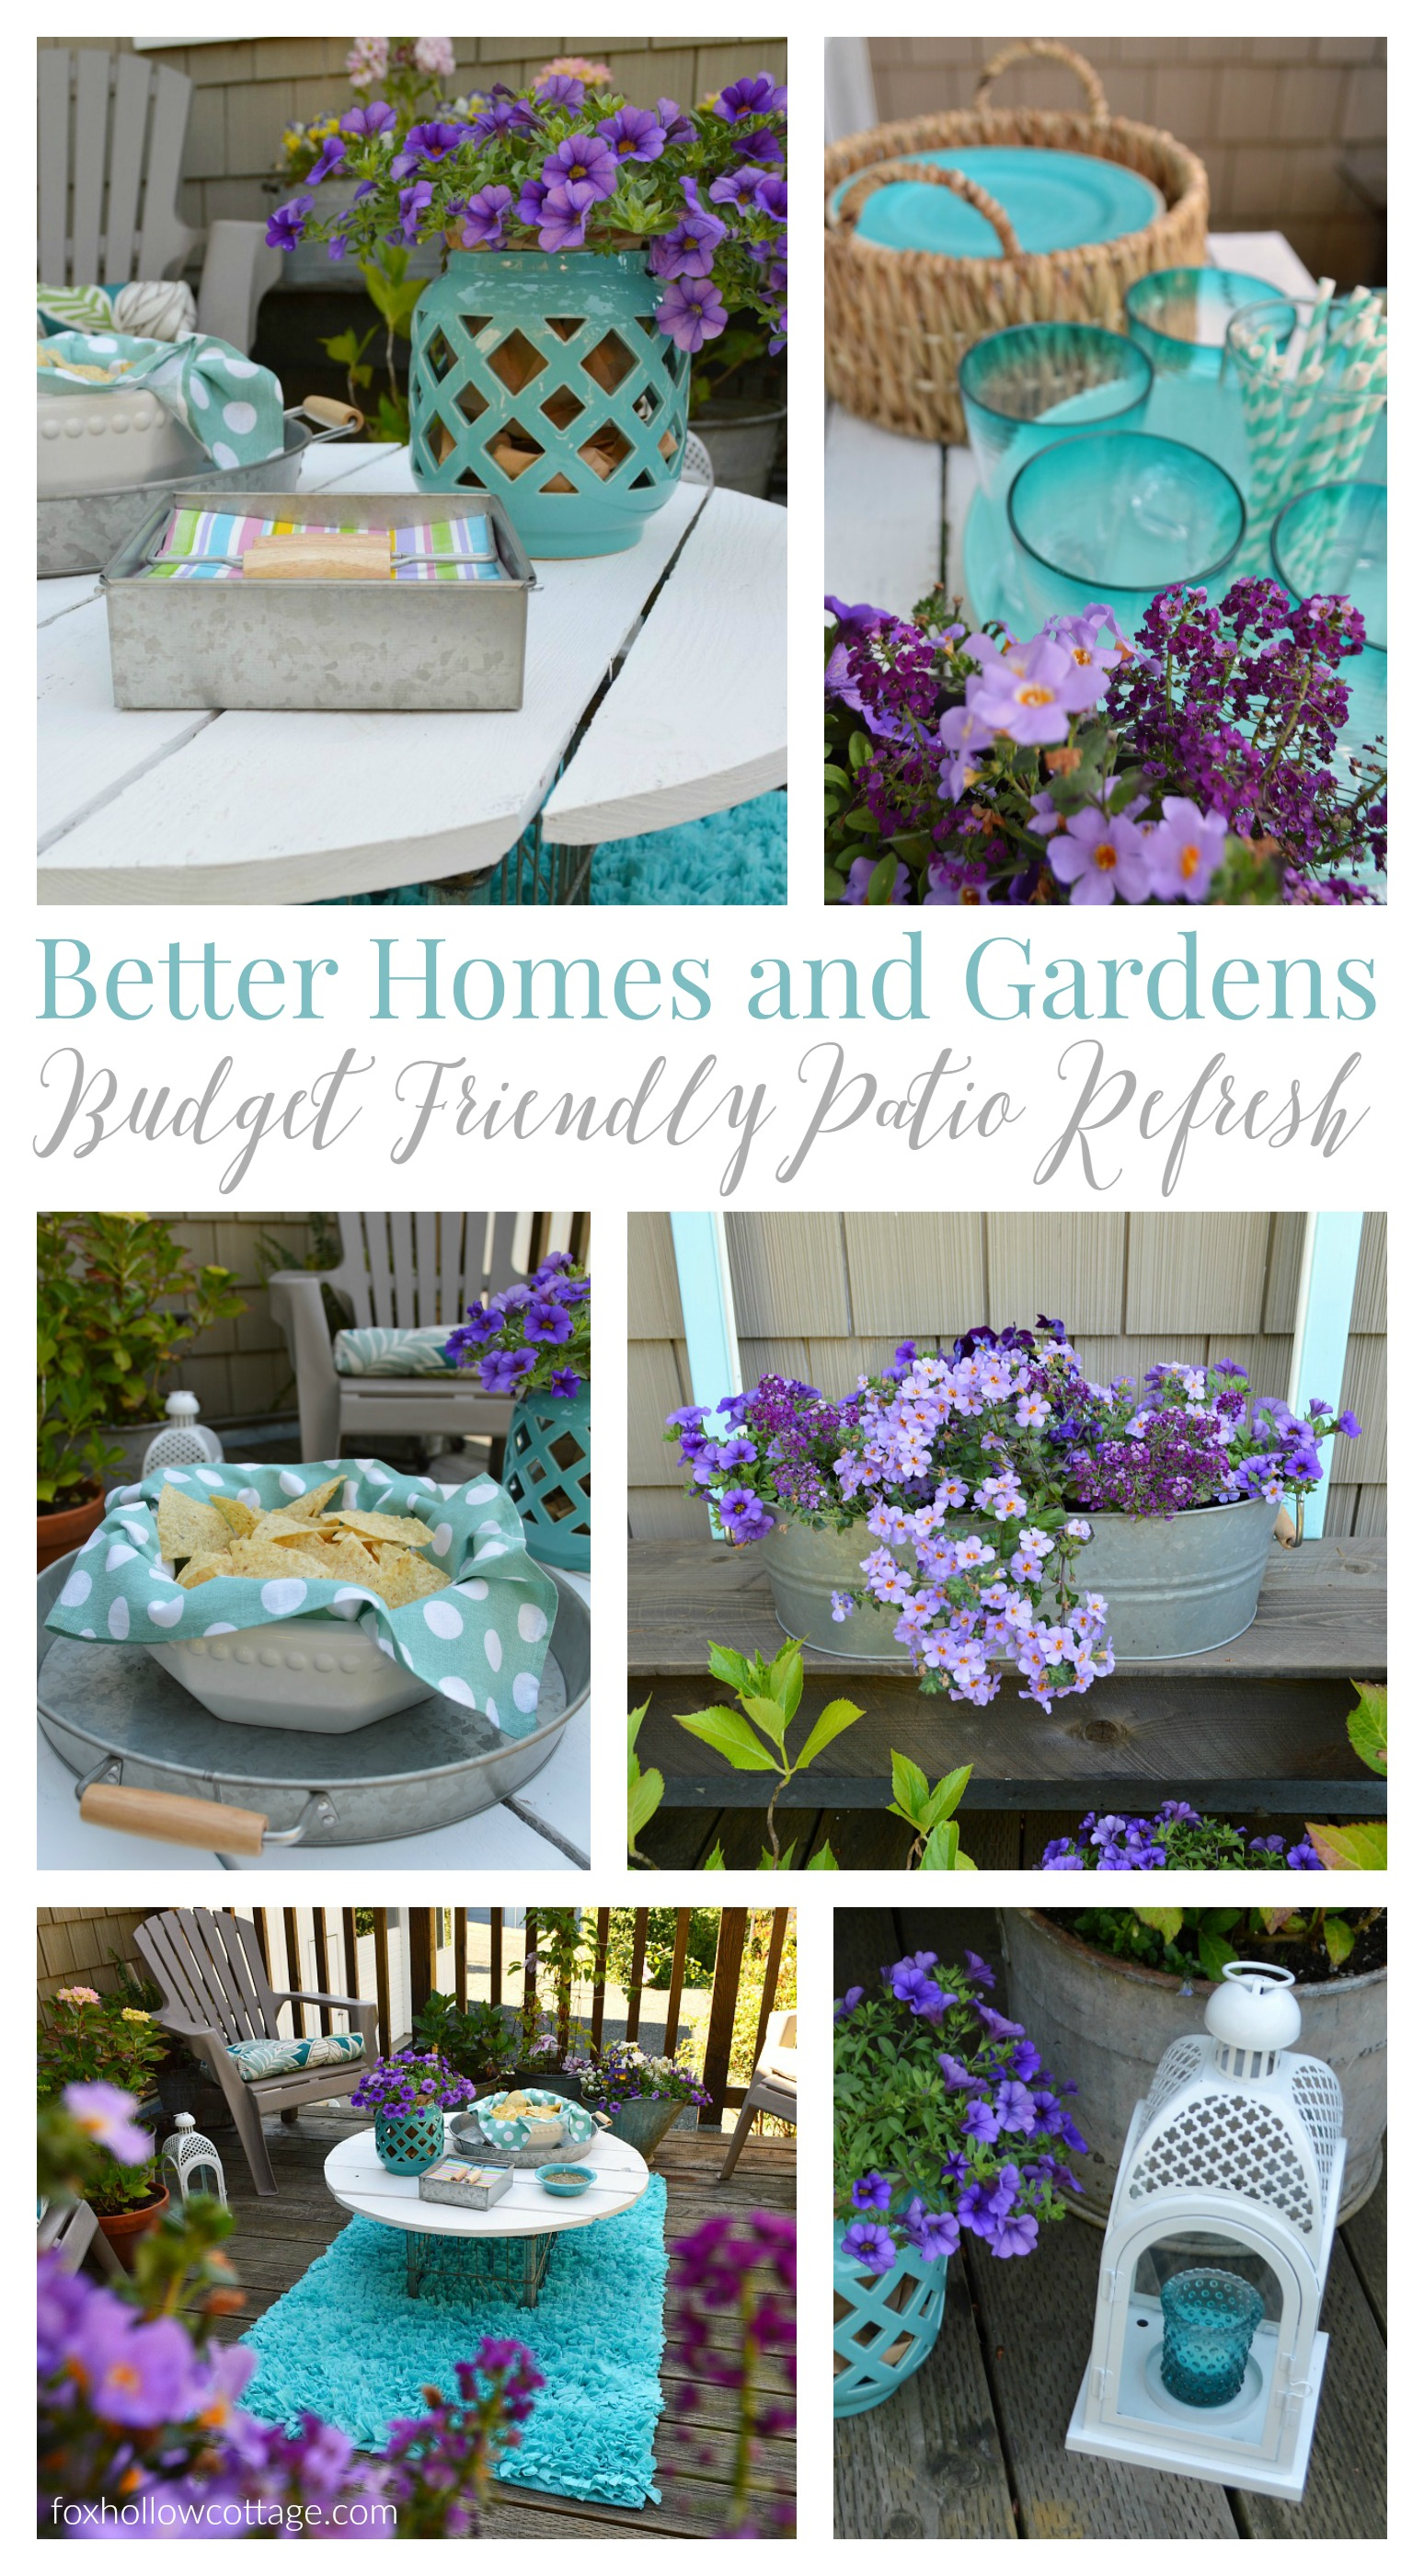 budget friendly patio refresh plus a double giveaway